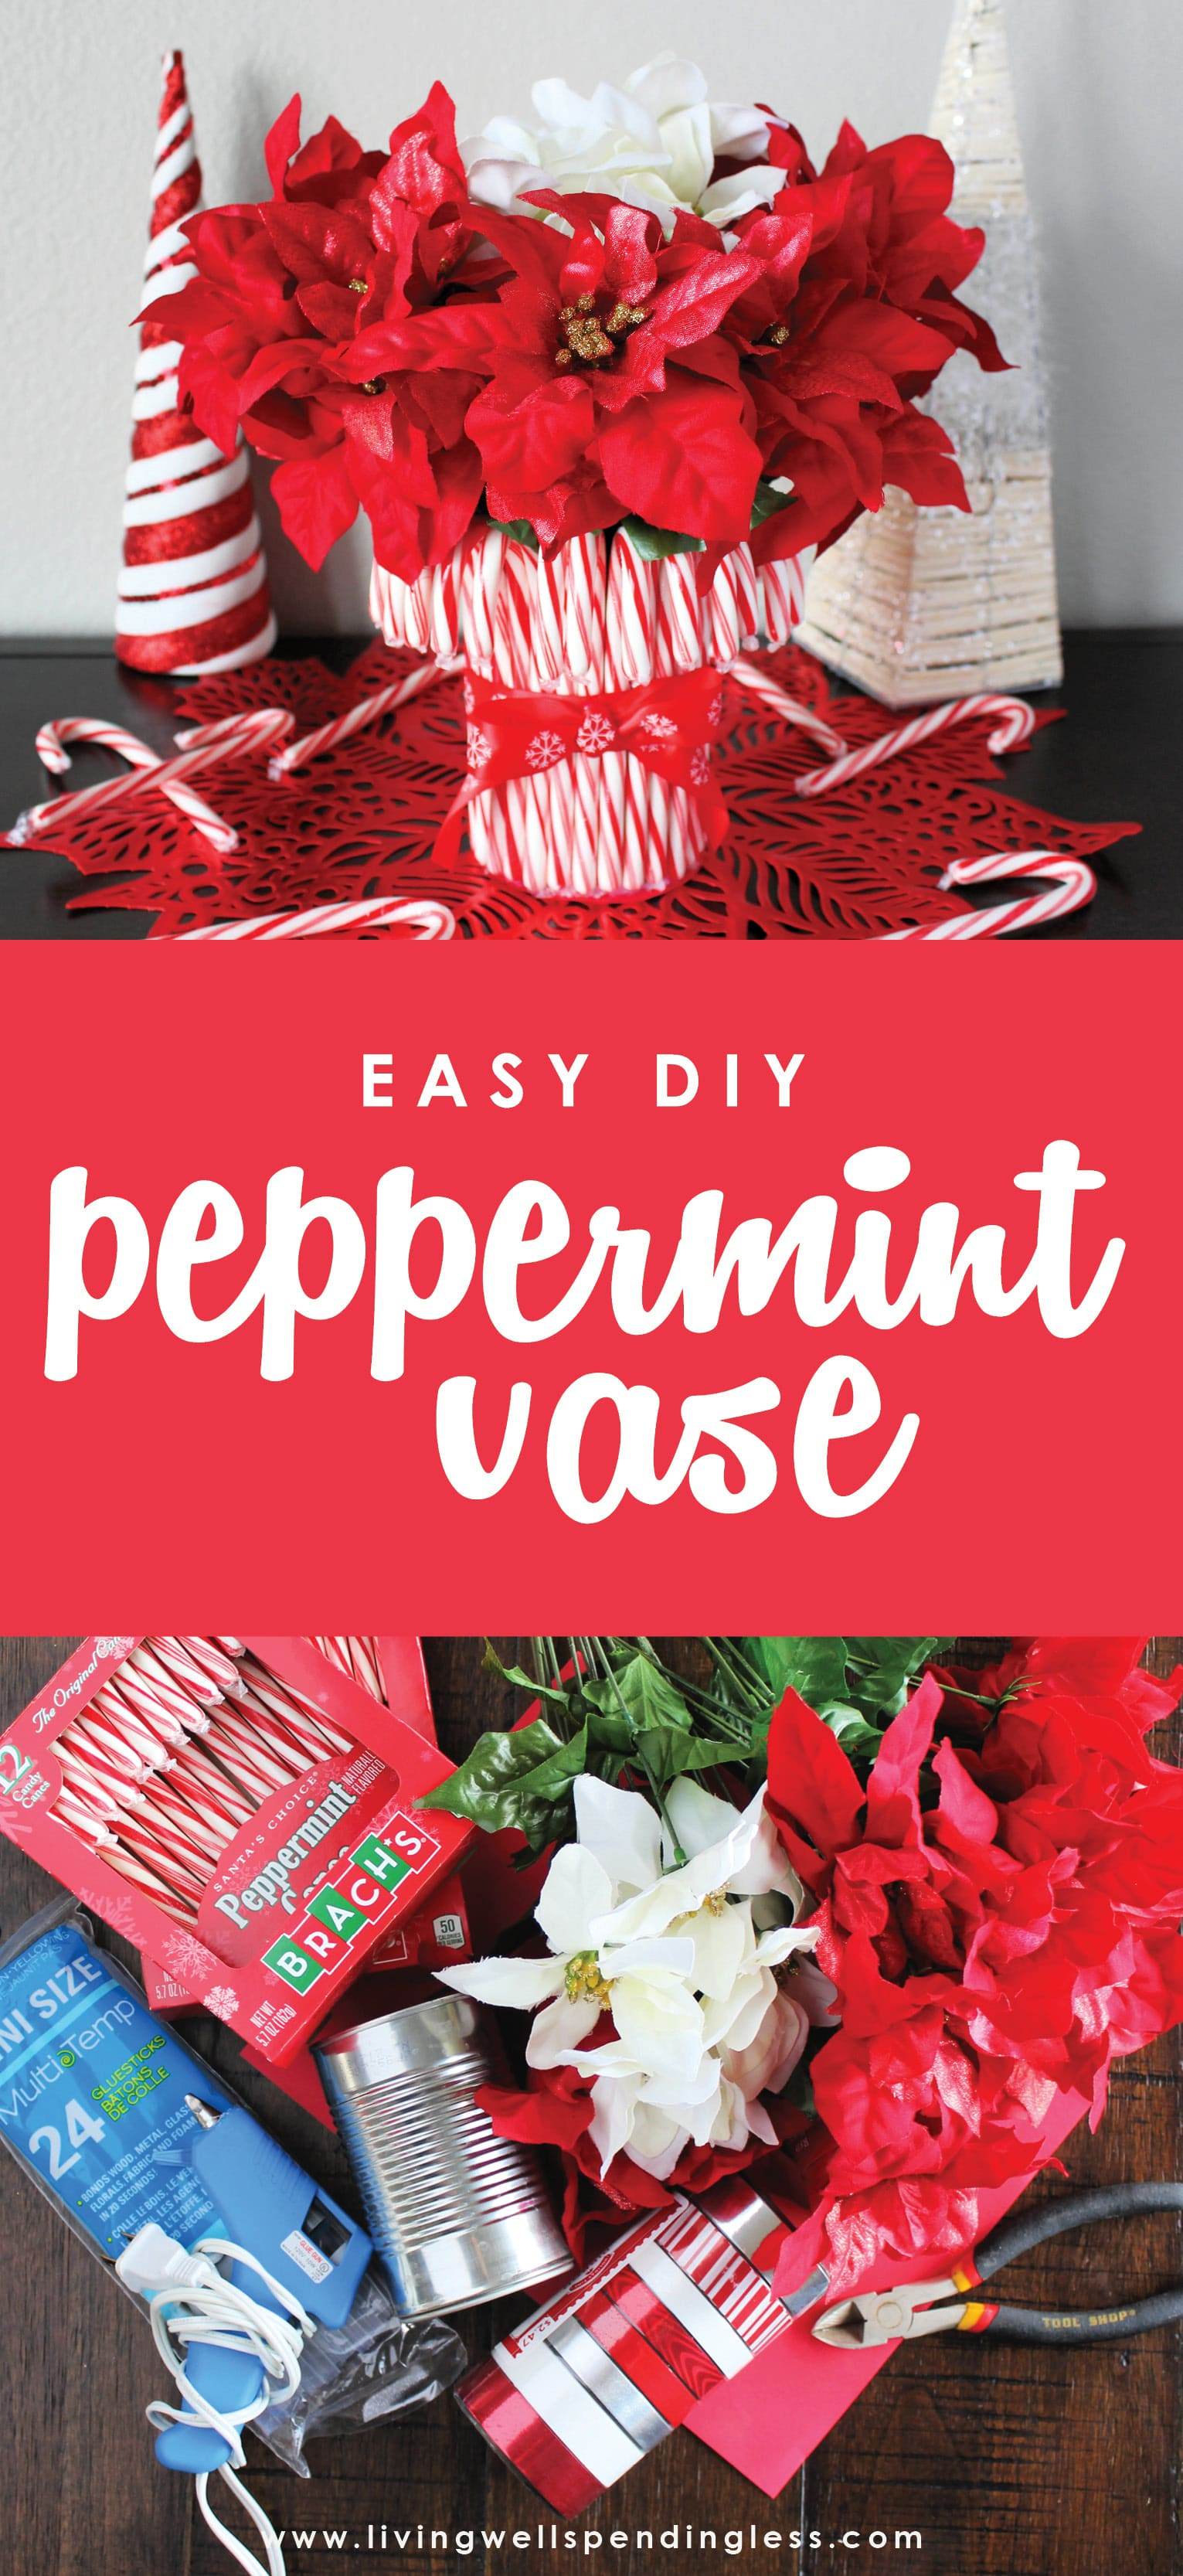 Looking for the perfect holiday centerpiece? This easy DIY candy cane vase is a budget-friendly project that will be the star of your holiday table!  Easy DIY Candy Cane Vase | Easy DIY Peppermint Vase